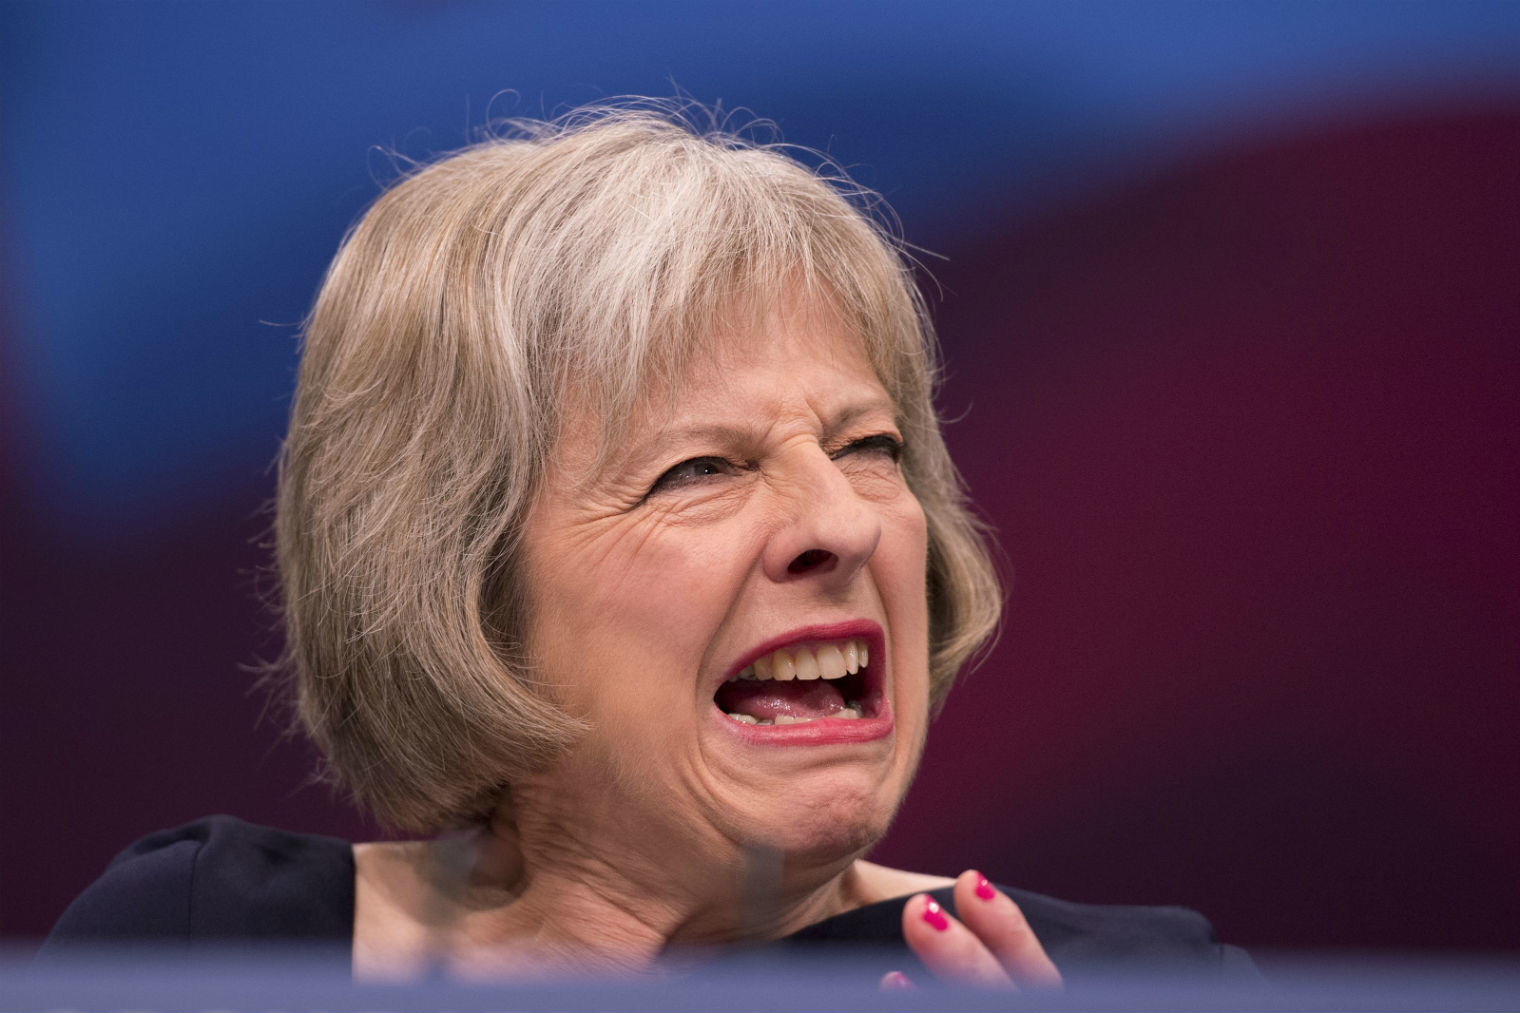 UNILAD surveillance bill 169788 Theresa May Was Epically Called Out Over Her Claims That Taking Peoples Data Is Fine